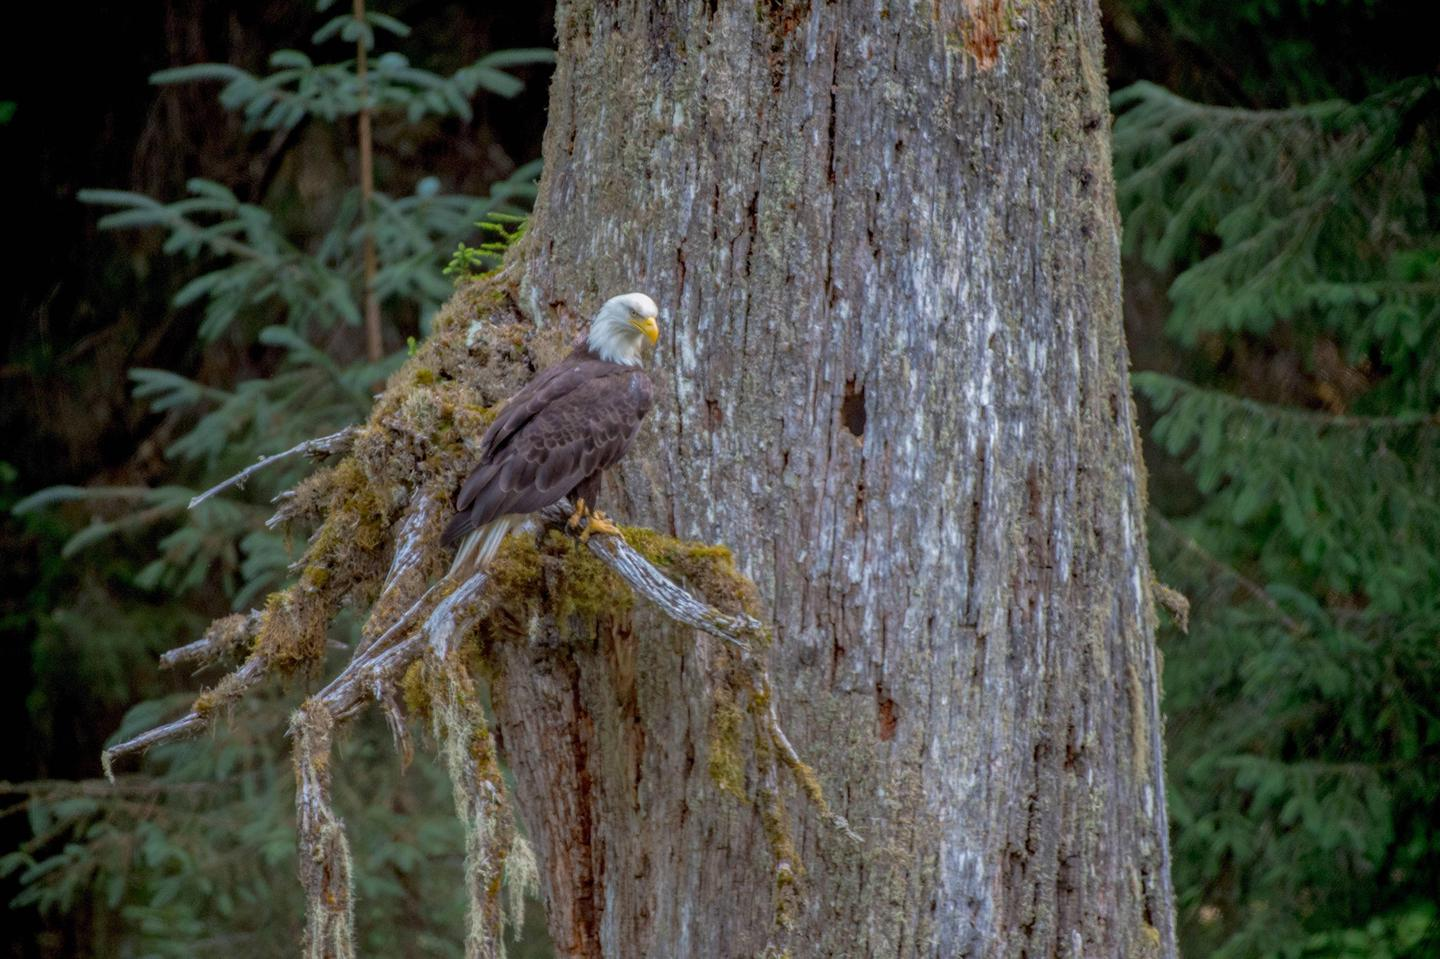 A bald eagle perched in a tree above Fish Creek.